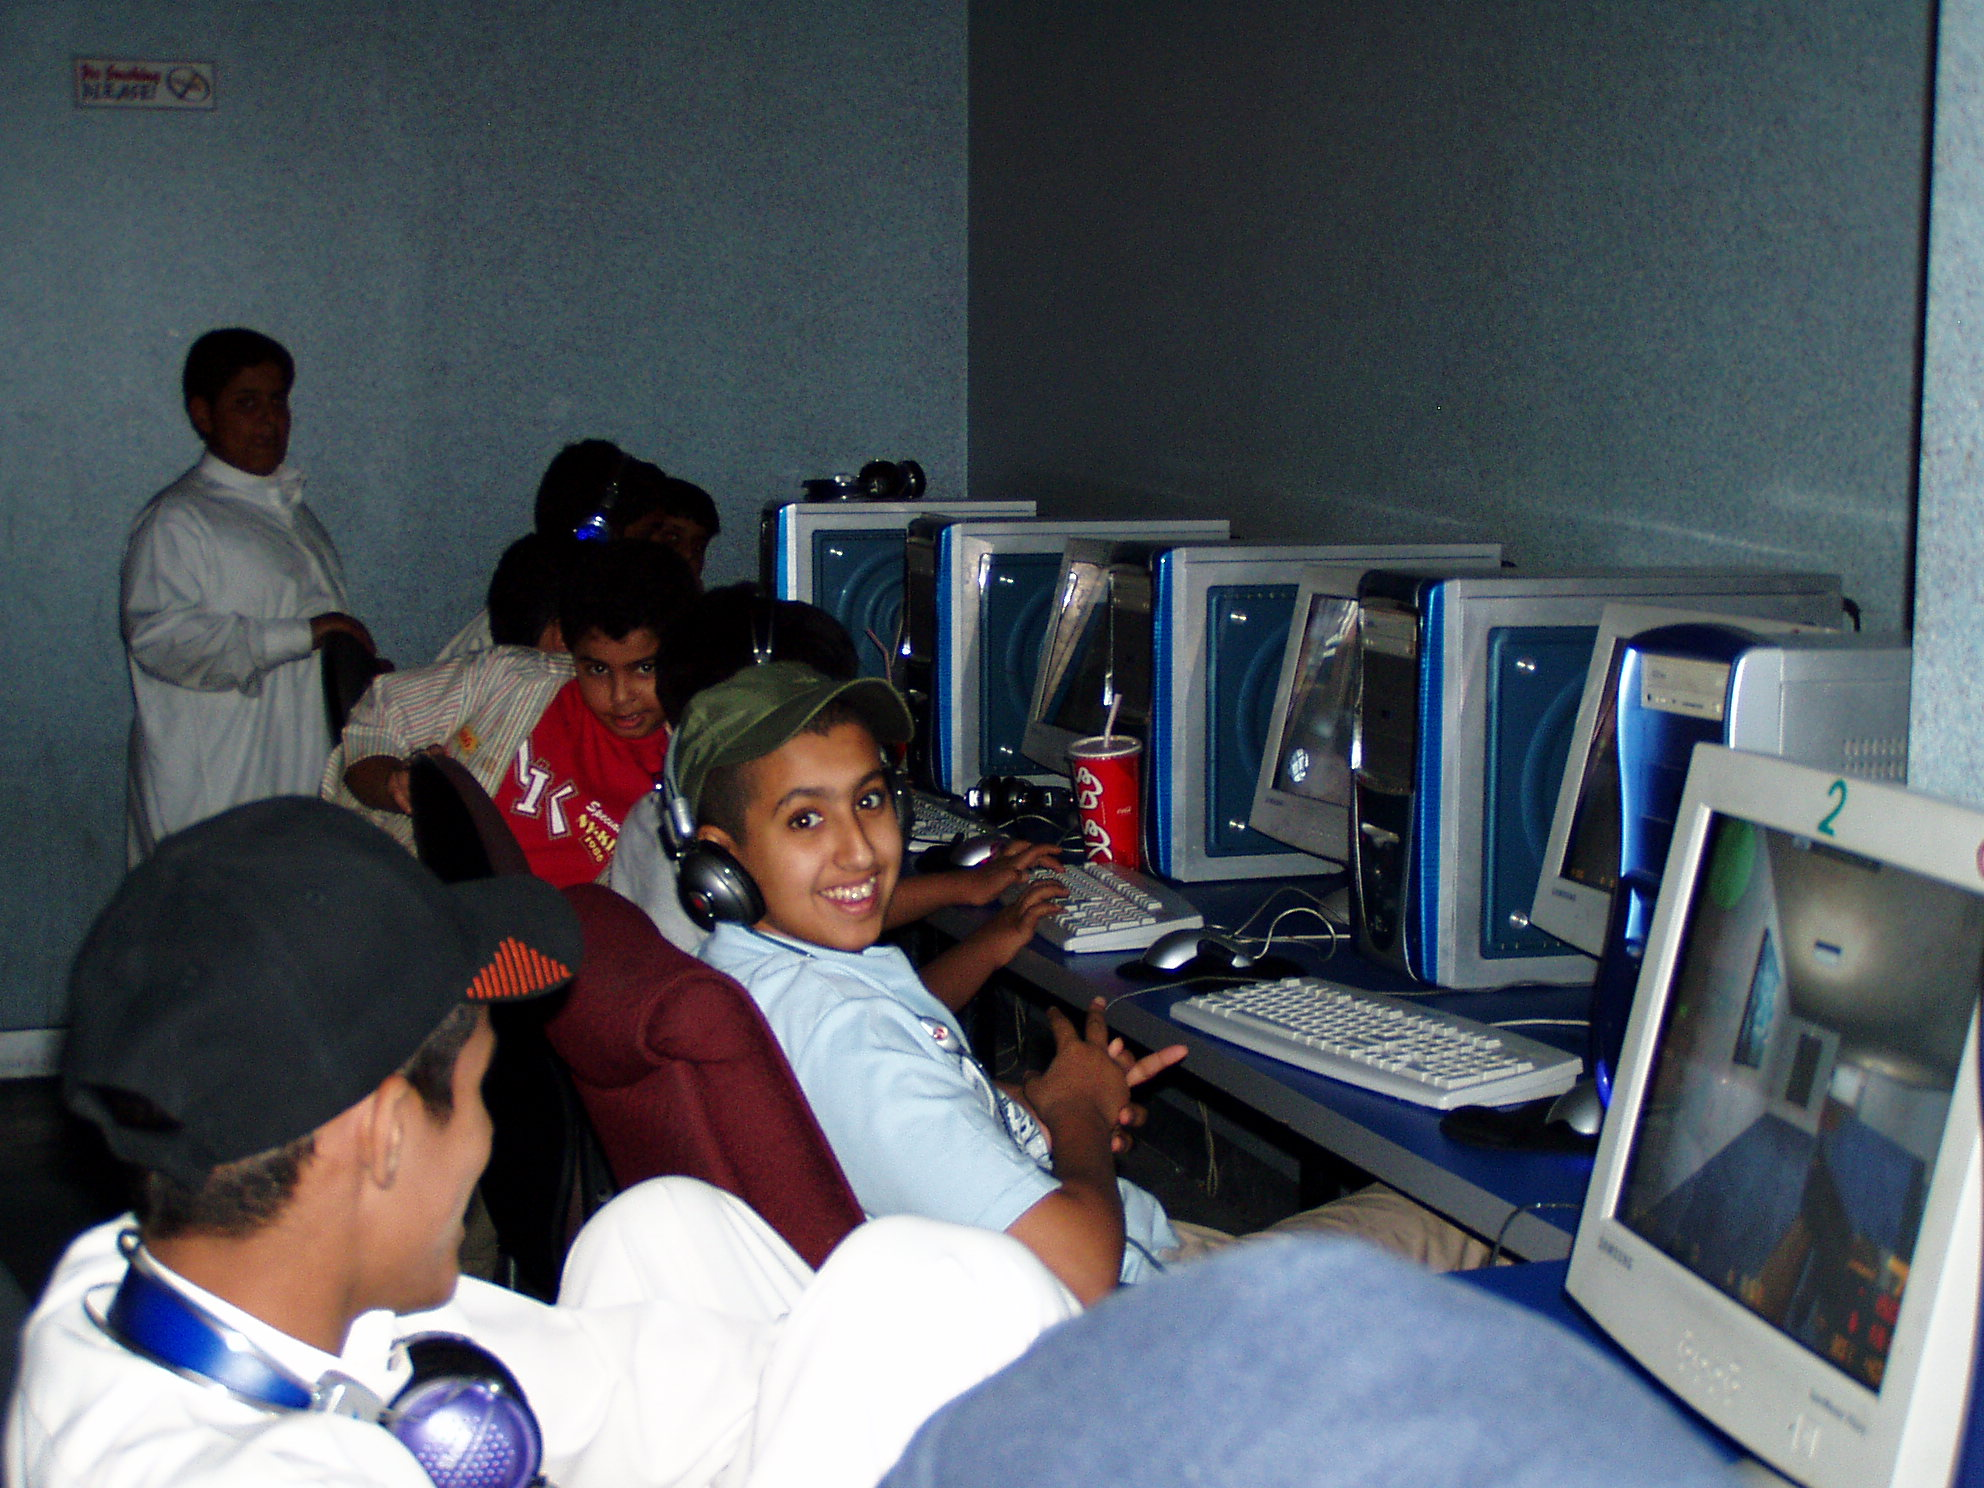 Southeast Asia's e-sports craze hits home with biggest gaming cafe in Chennai